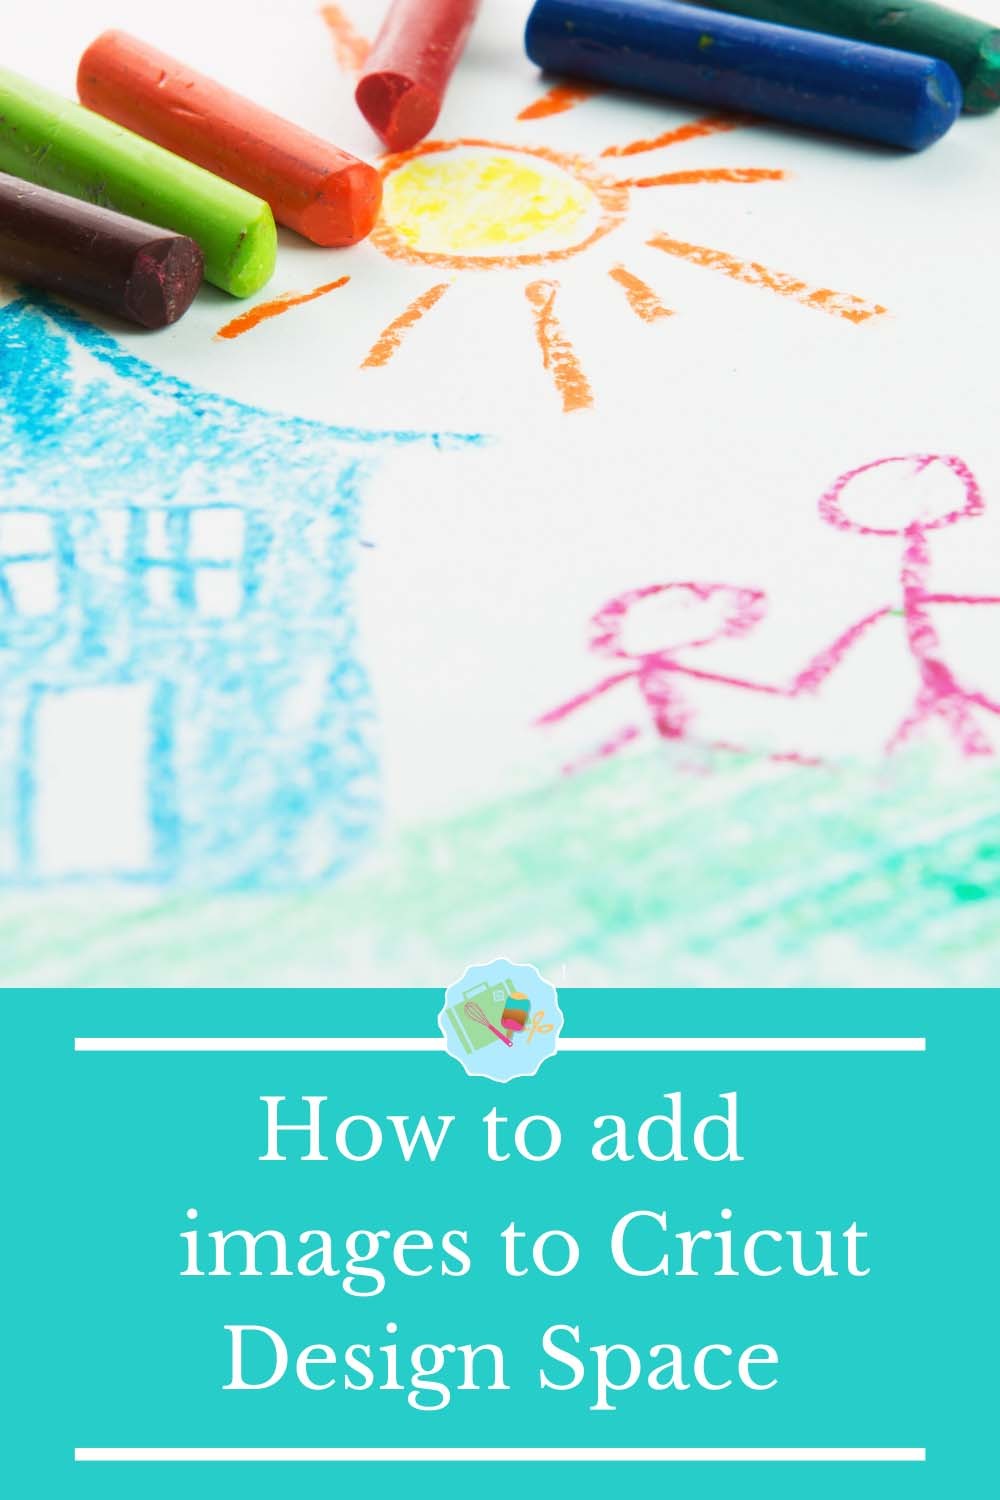 How to add your own images to Cricut Design Space